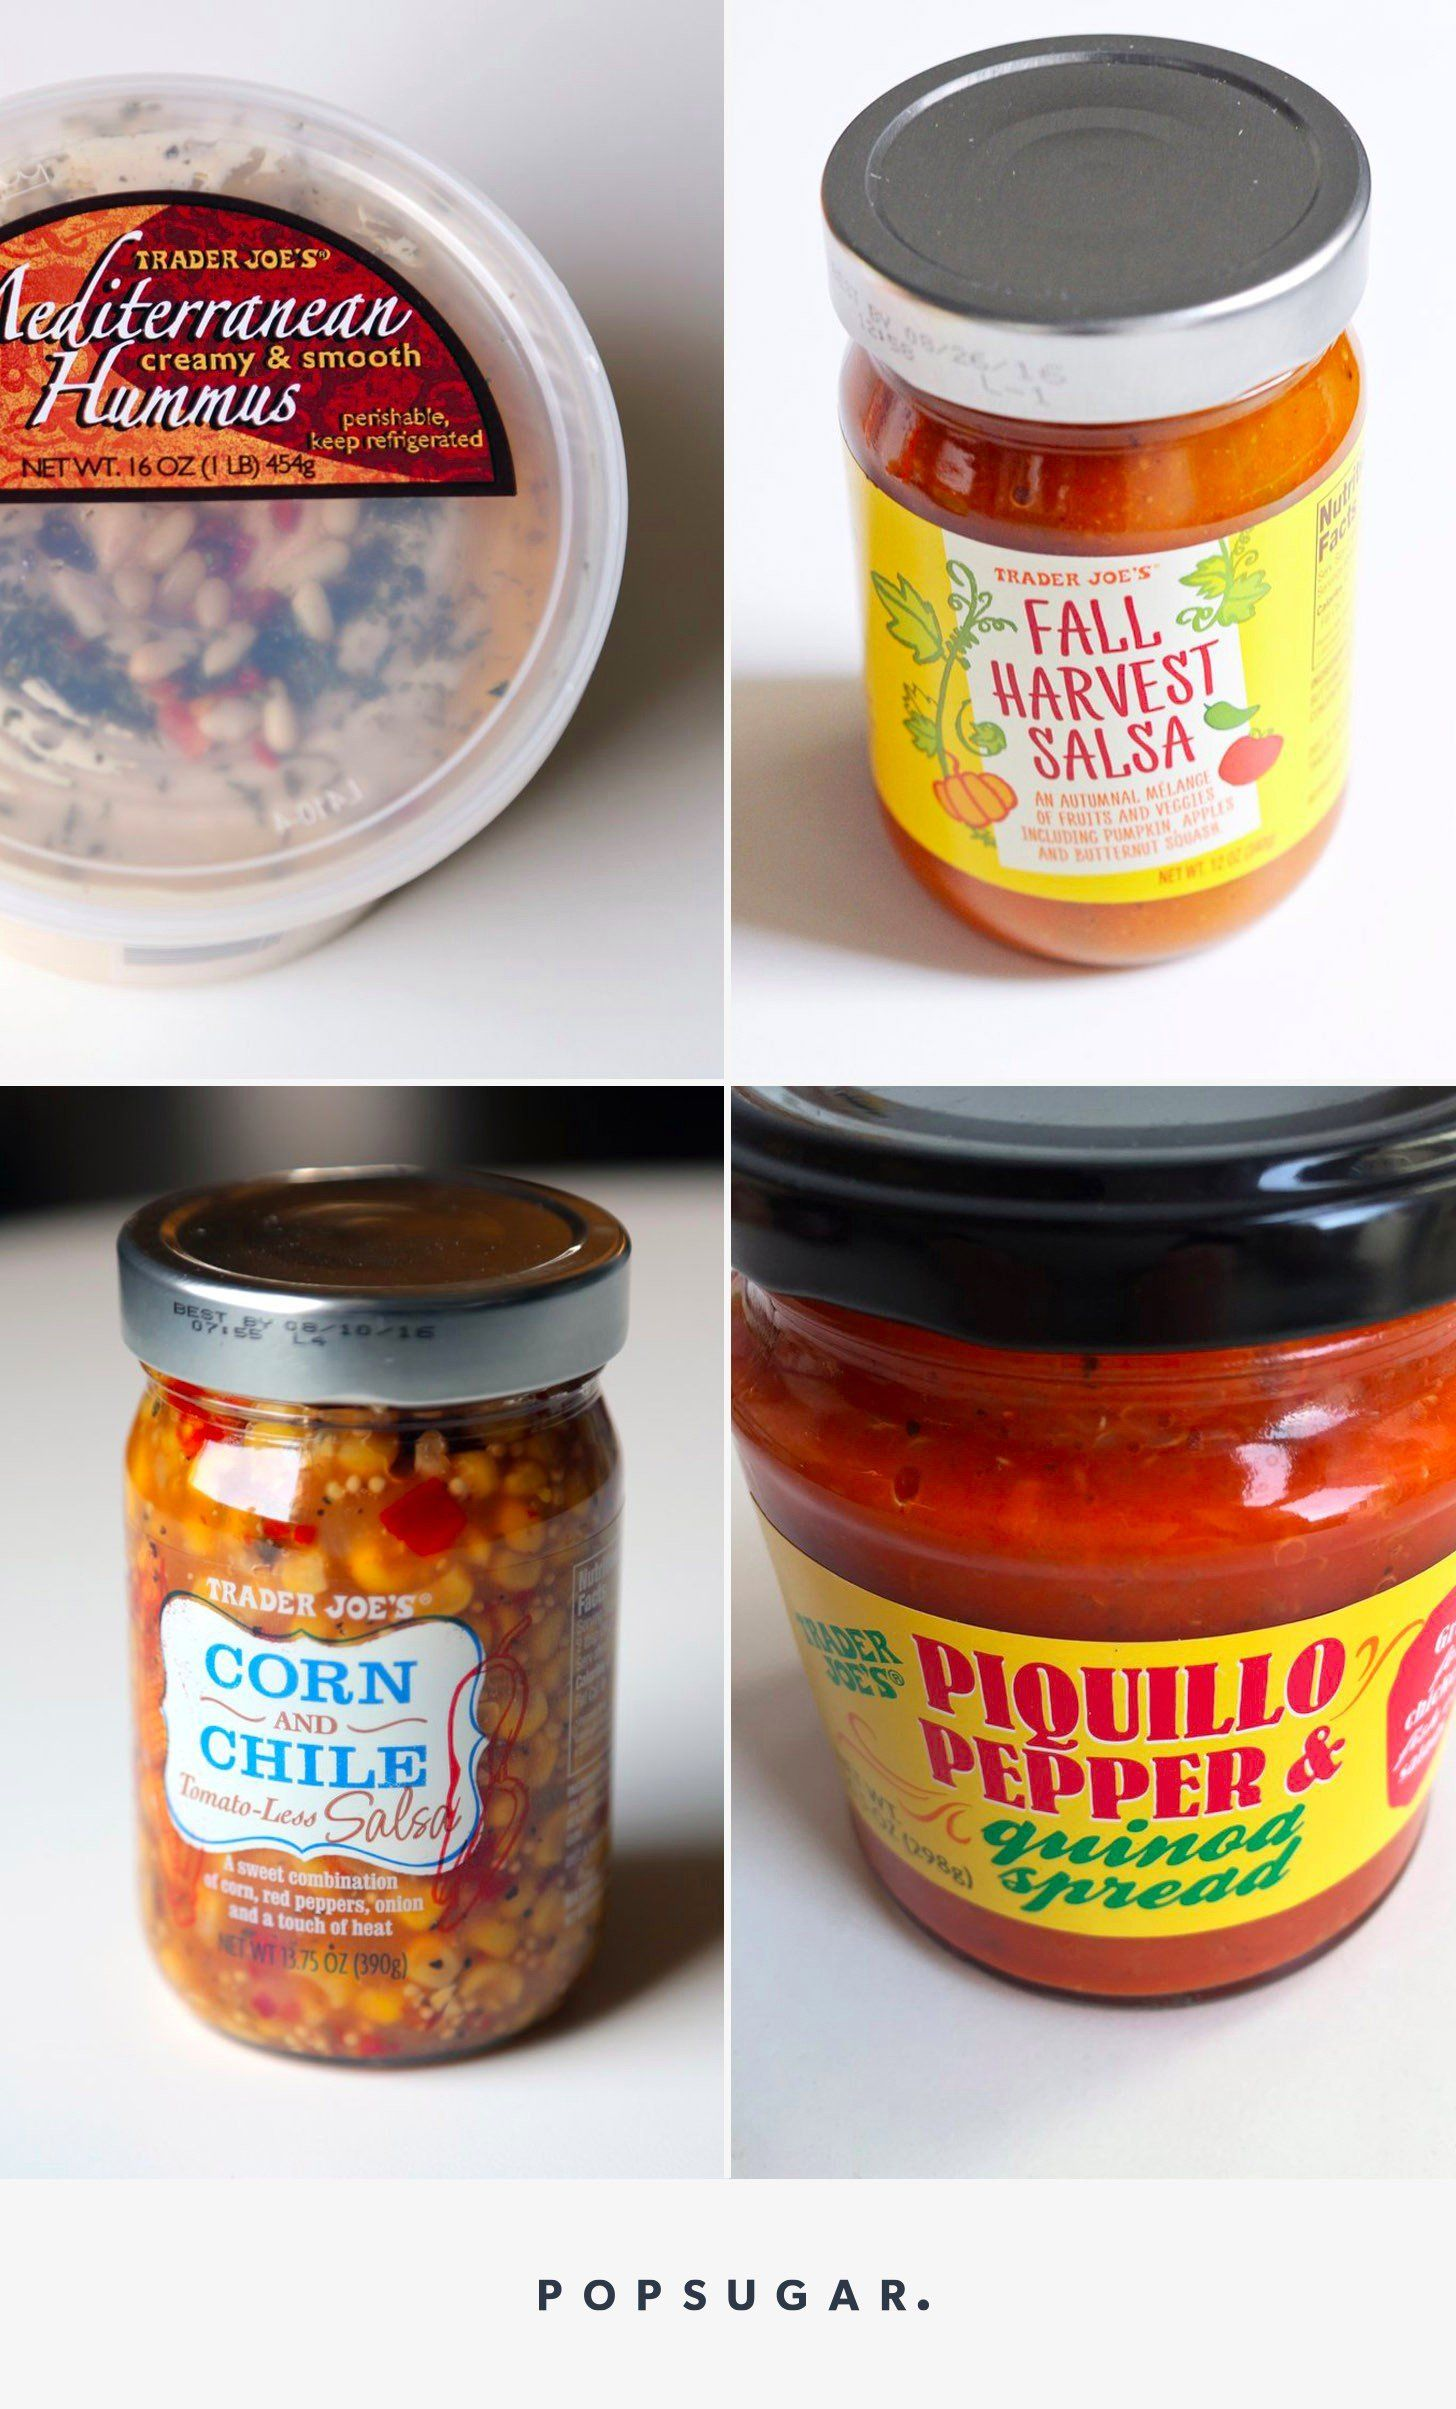 30 Tasty Trader Joe's Dips That Deserve a Spot in Your